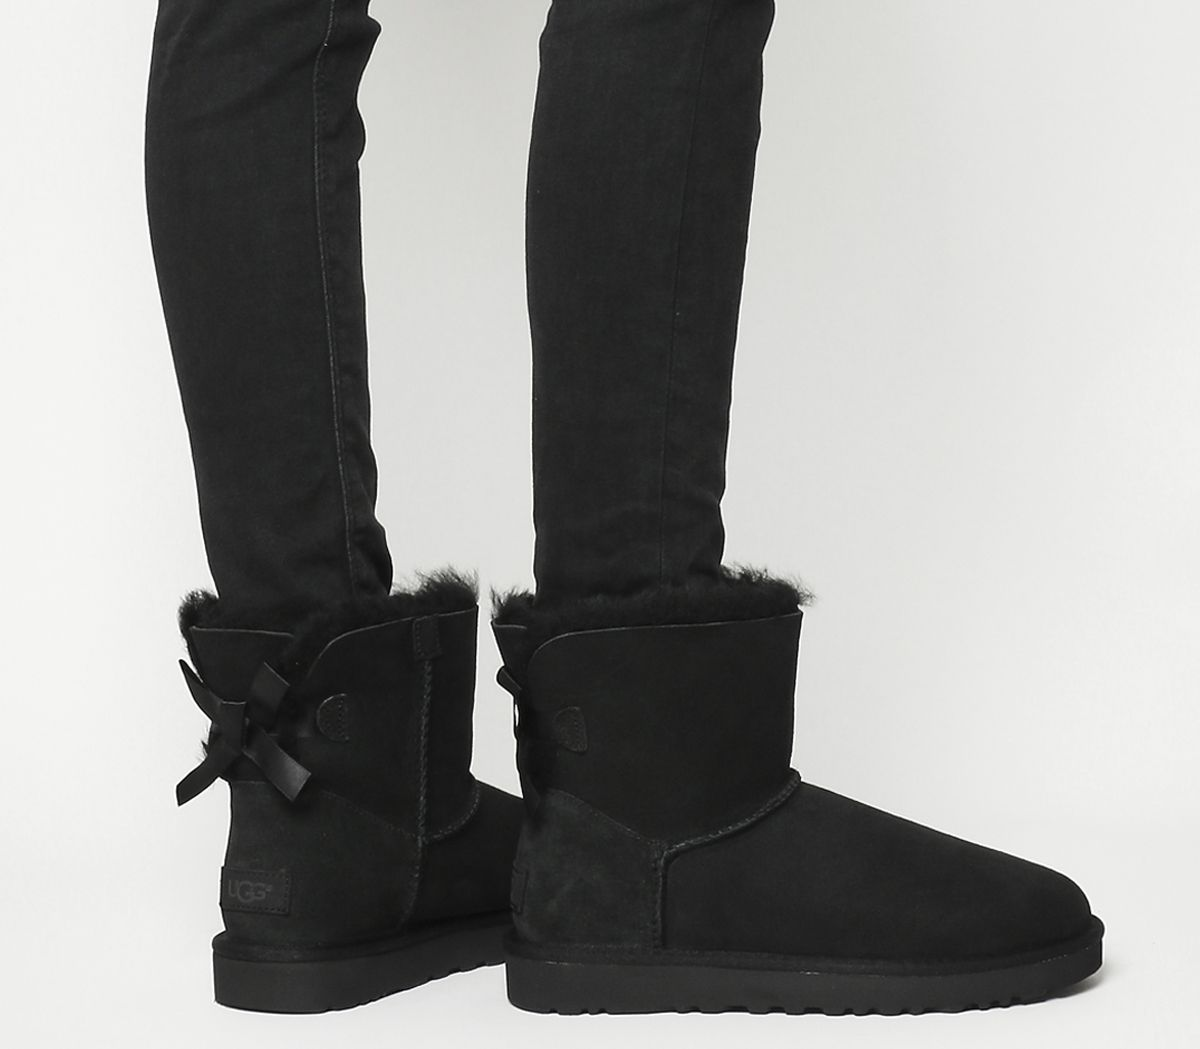 696081c7228 Mini Bailey Bow Boots